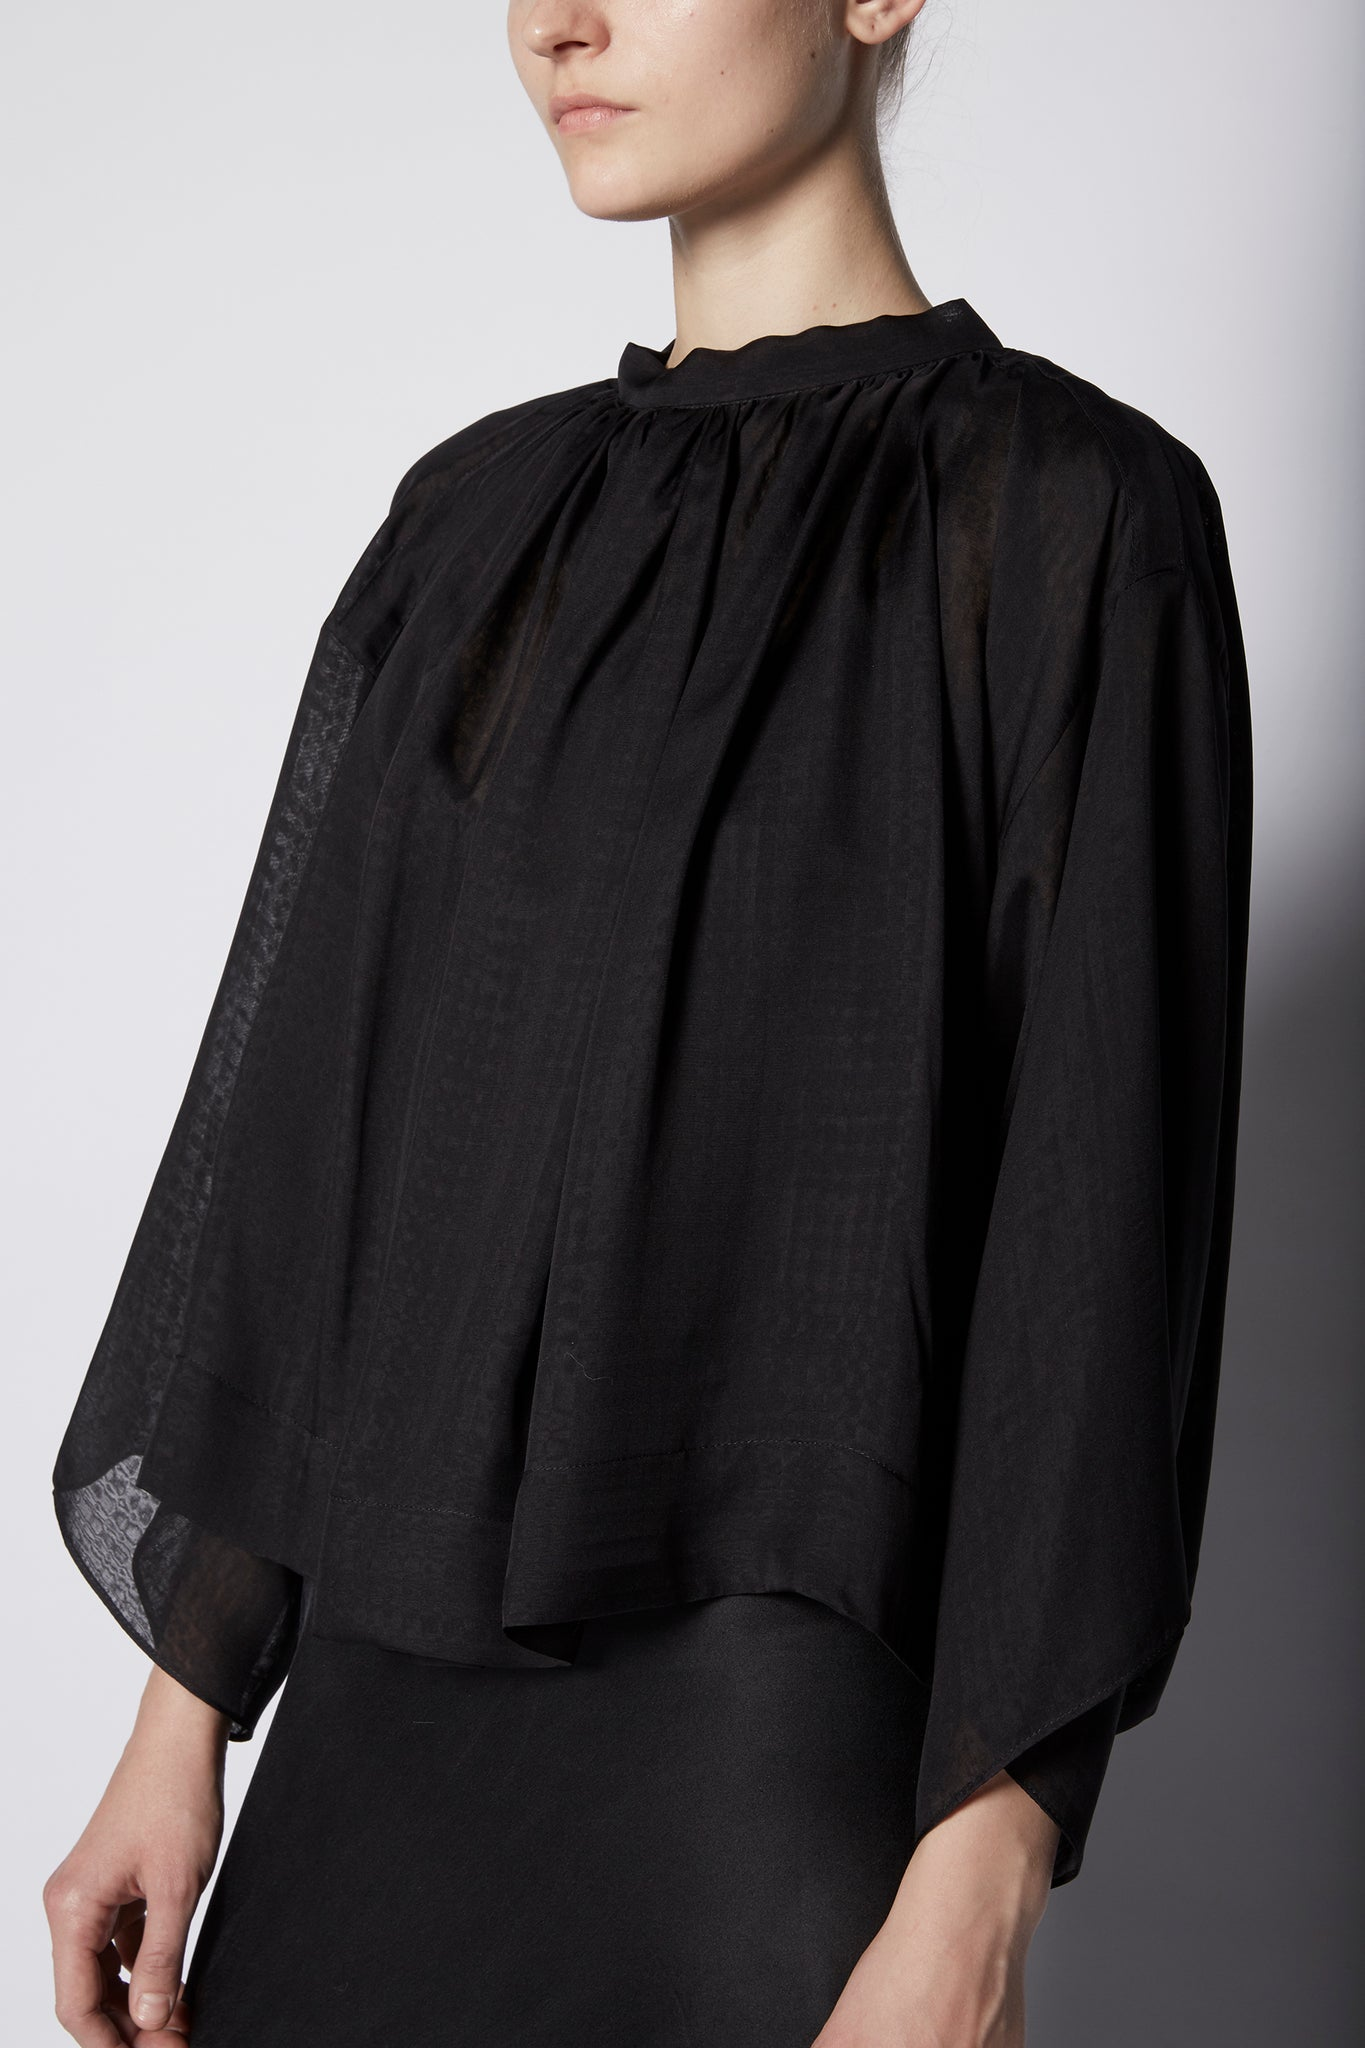 The Monk Blouse